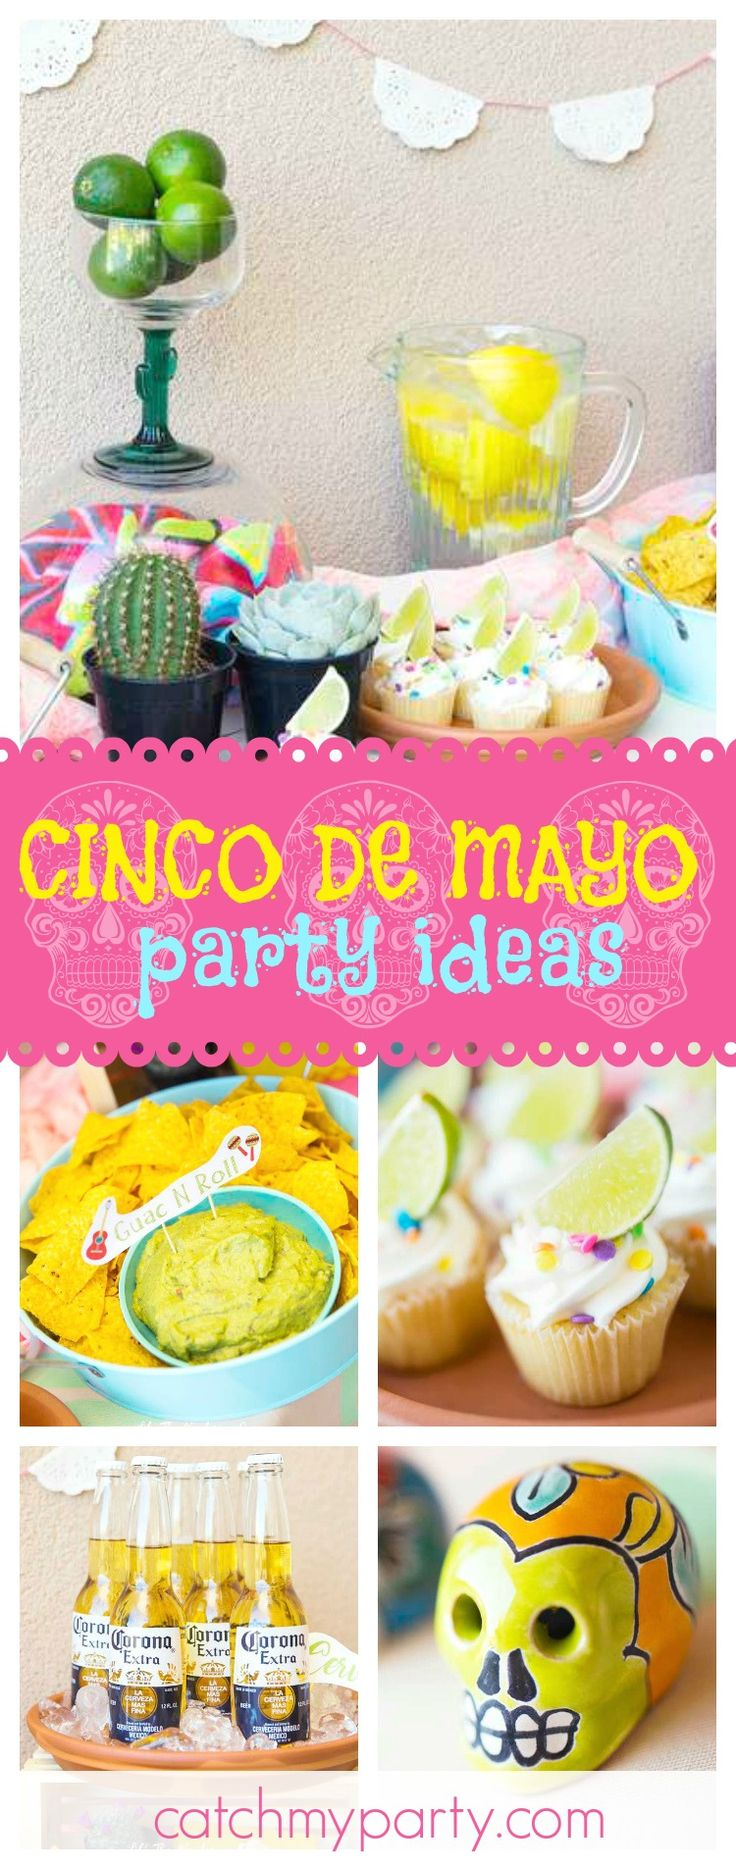 Mexican fiesta party decorating ideas hosting guide - Cinco De Mayo Cocktail Cinco De Mayo Party Mexican Partymexican Fiestaparty Craftsdiy Partyideas